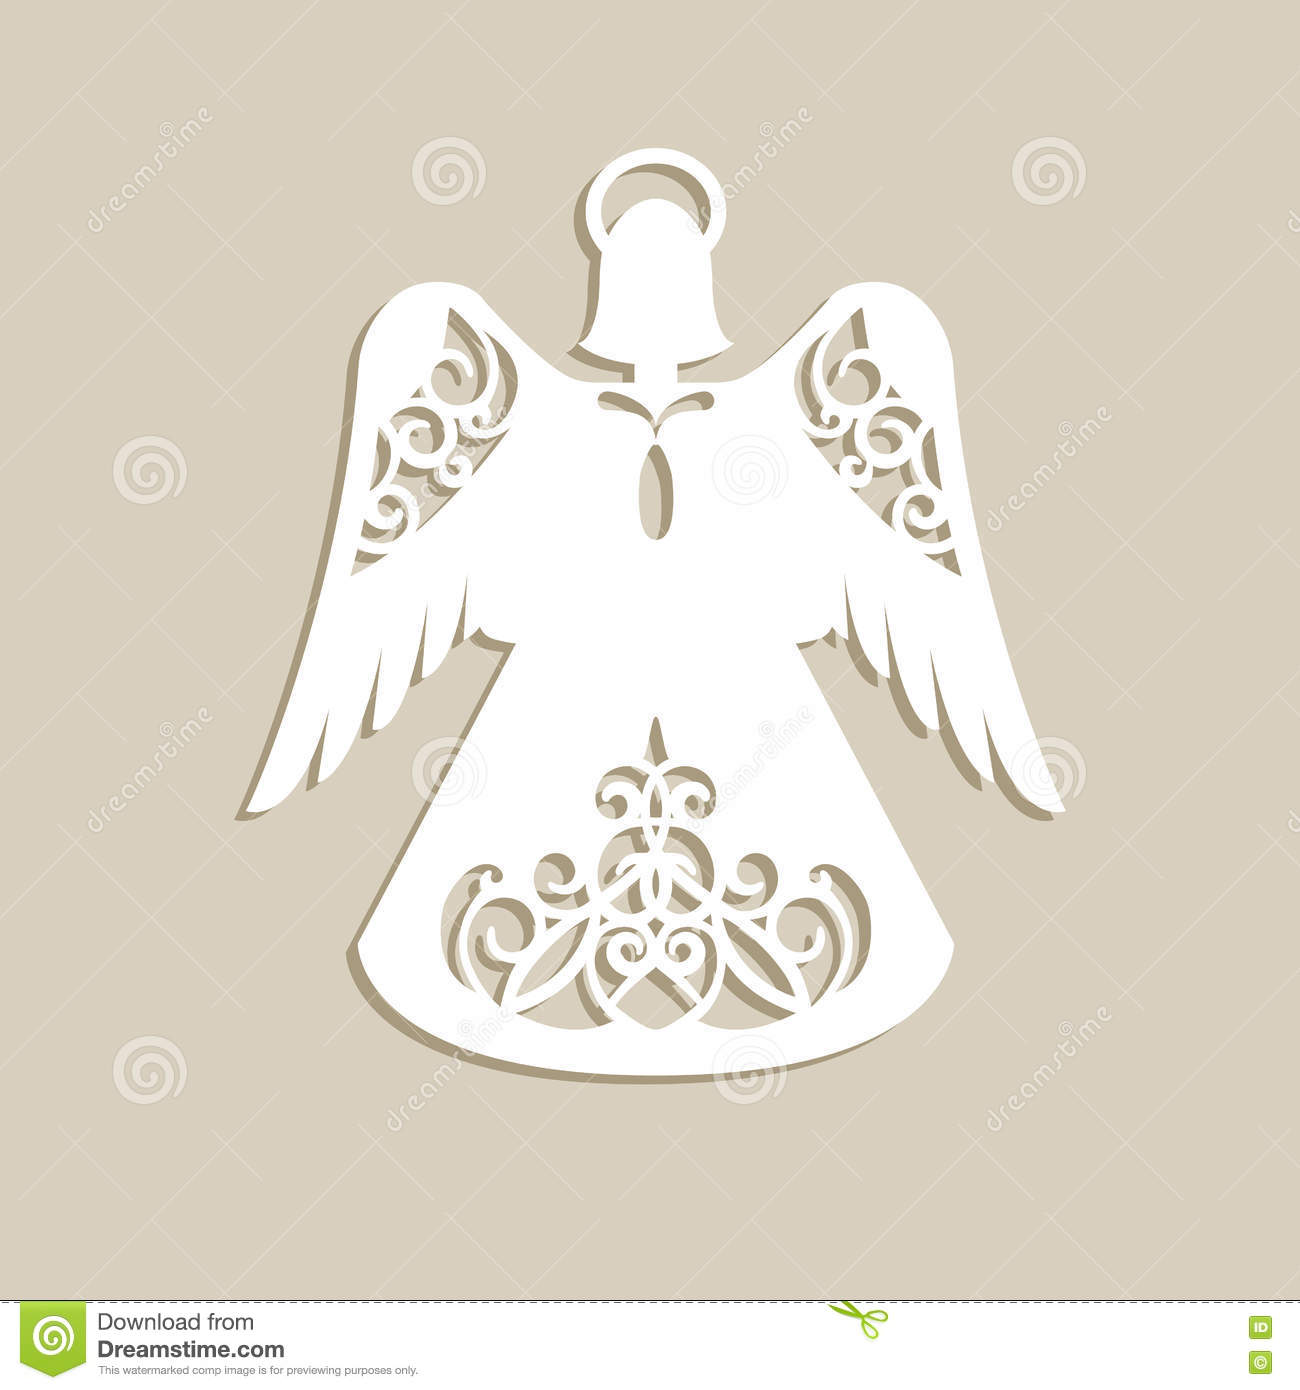 Christmas carved openwork angel stock vector for Angel tree decoration template